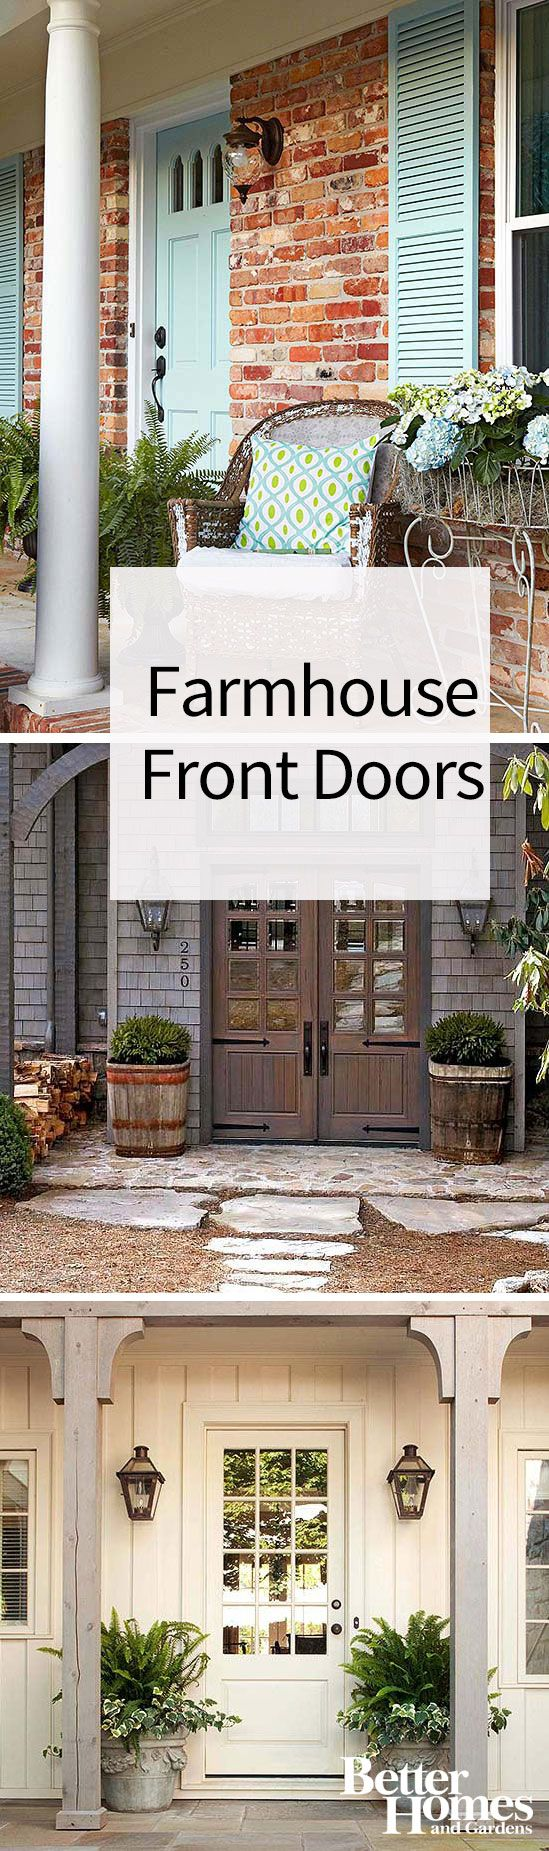 How to give your home a gracious, eye-catching entrance? This collection of farm-fresh front doors promises to invite you in to sit a spell and savor some hospitality.